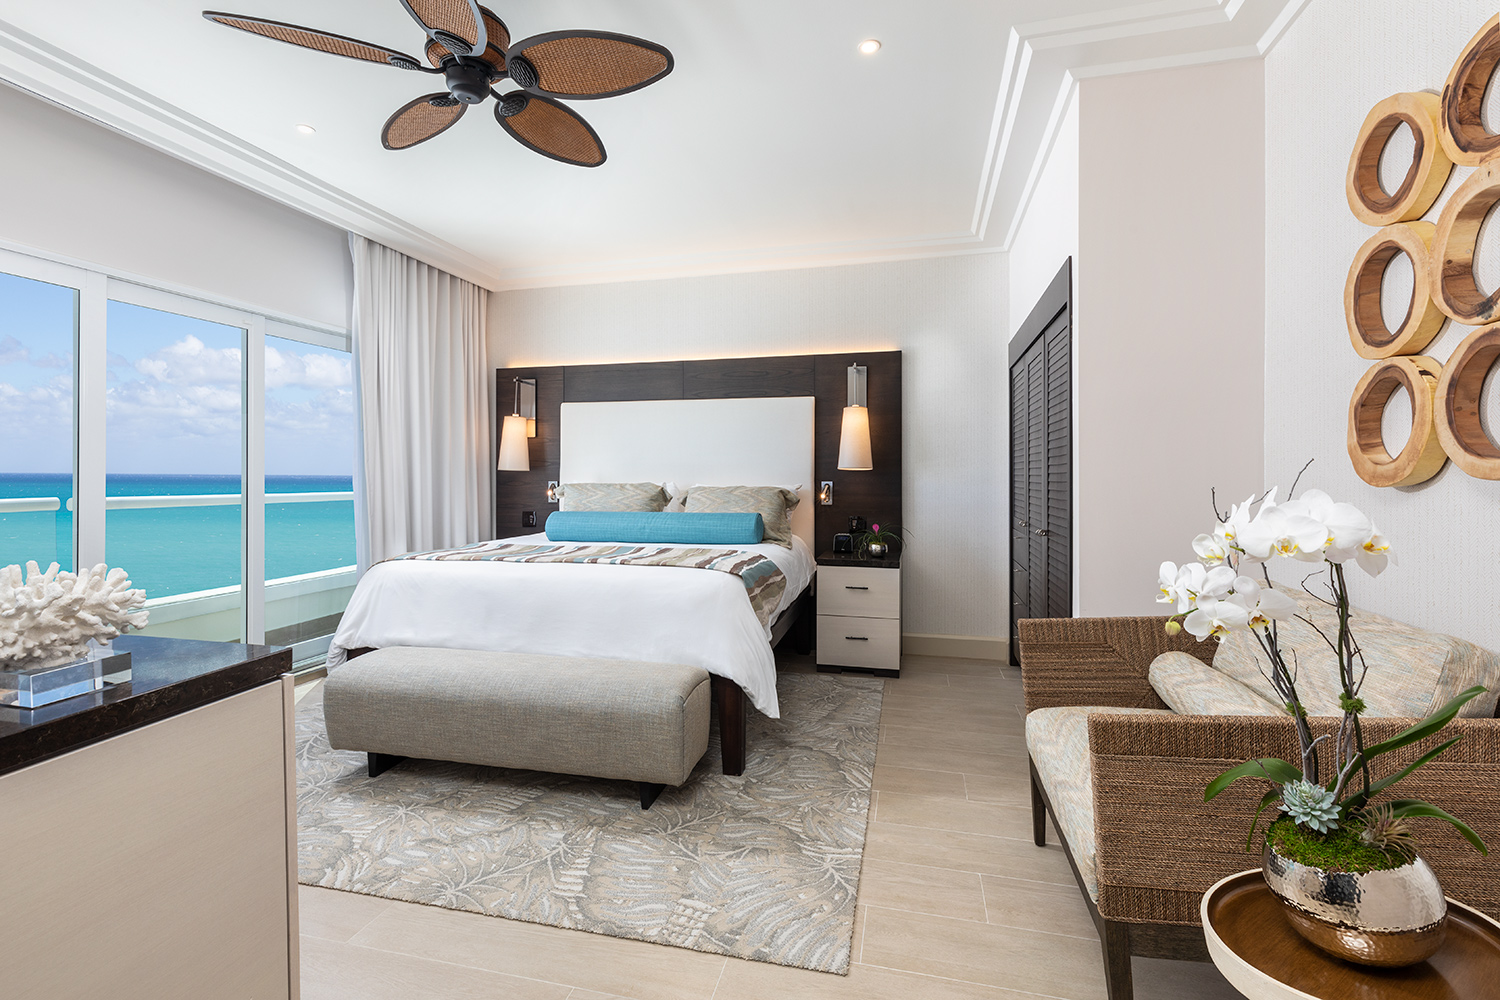 The-Palms-Hotel-March-2019-room-1206-05